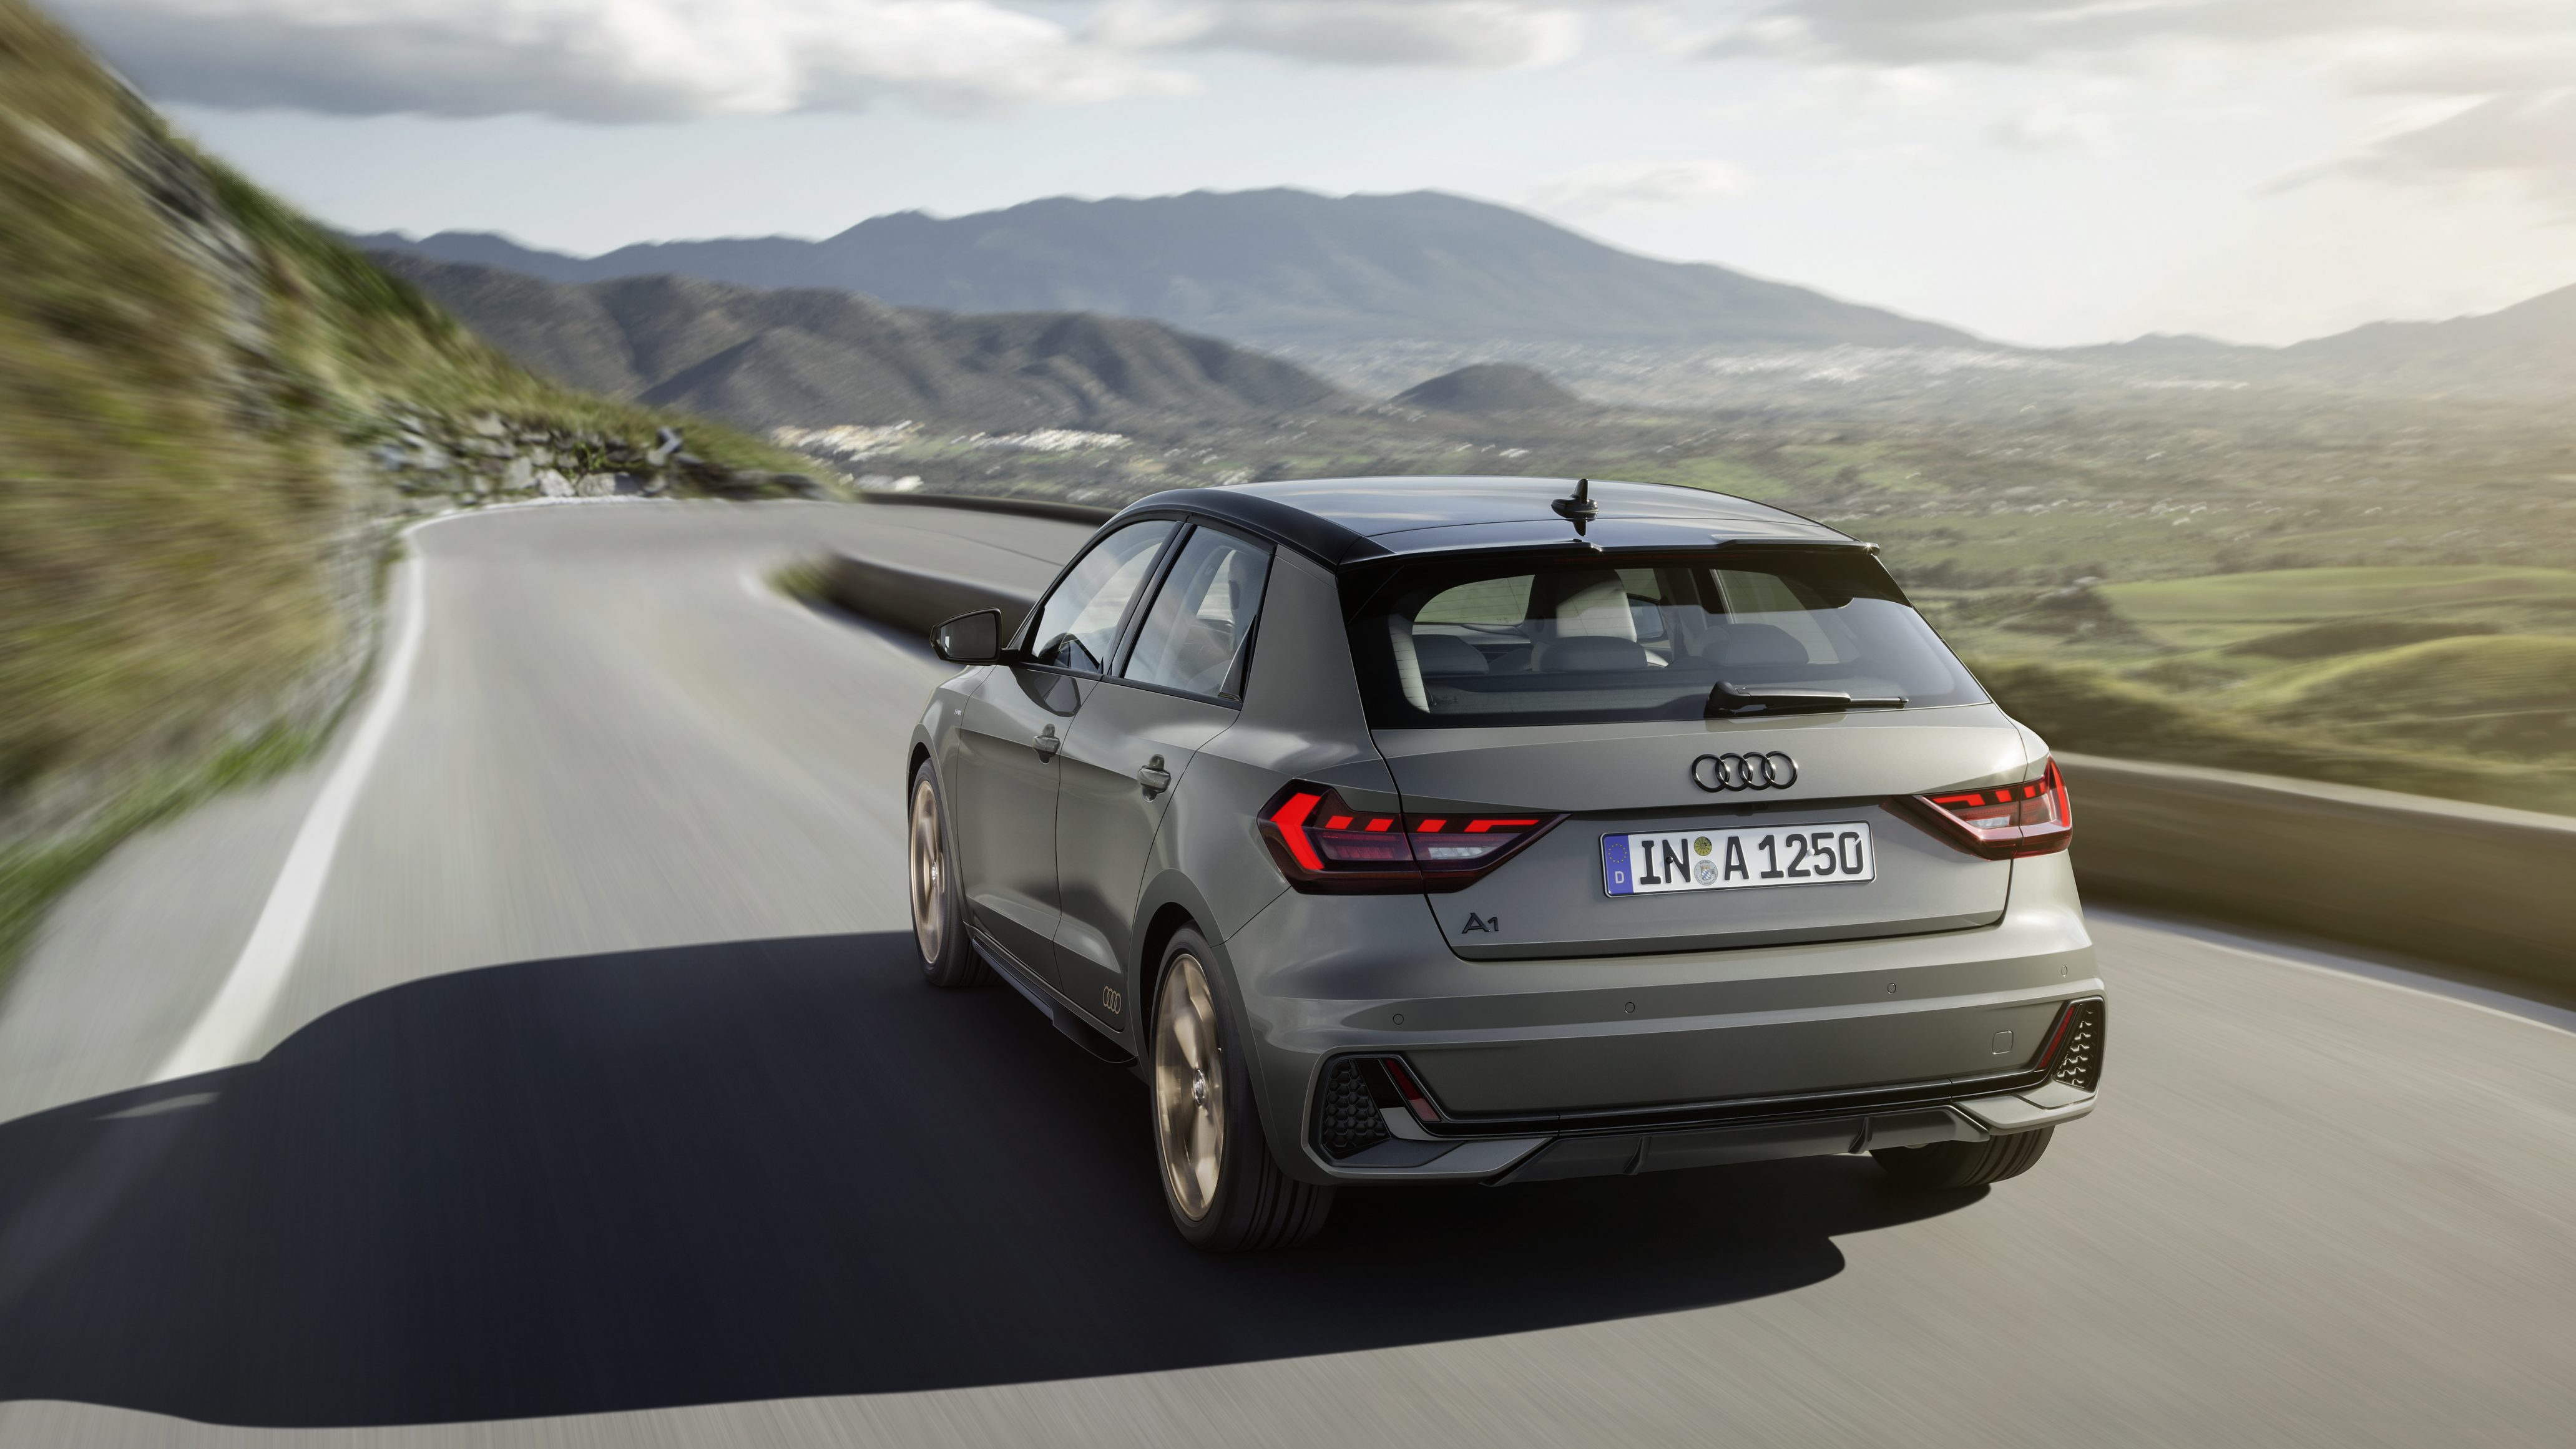 Audi A1 Sportback on a nice country road